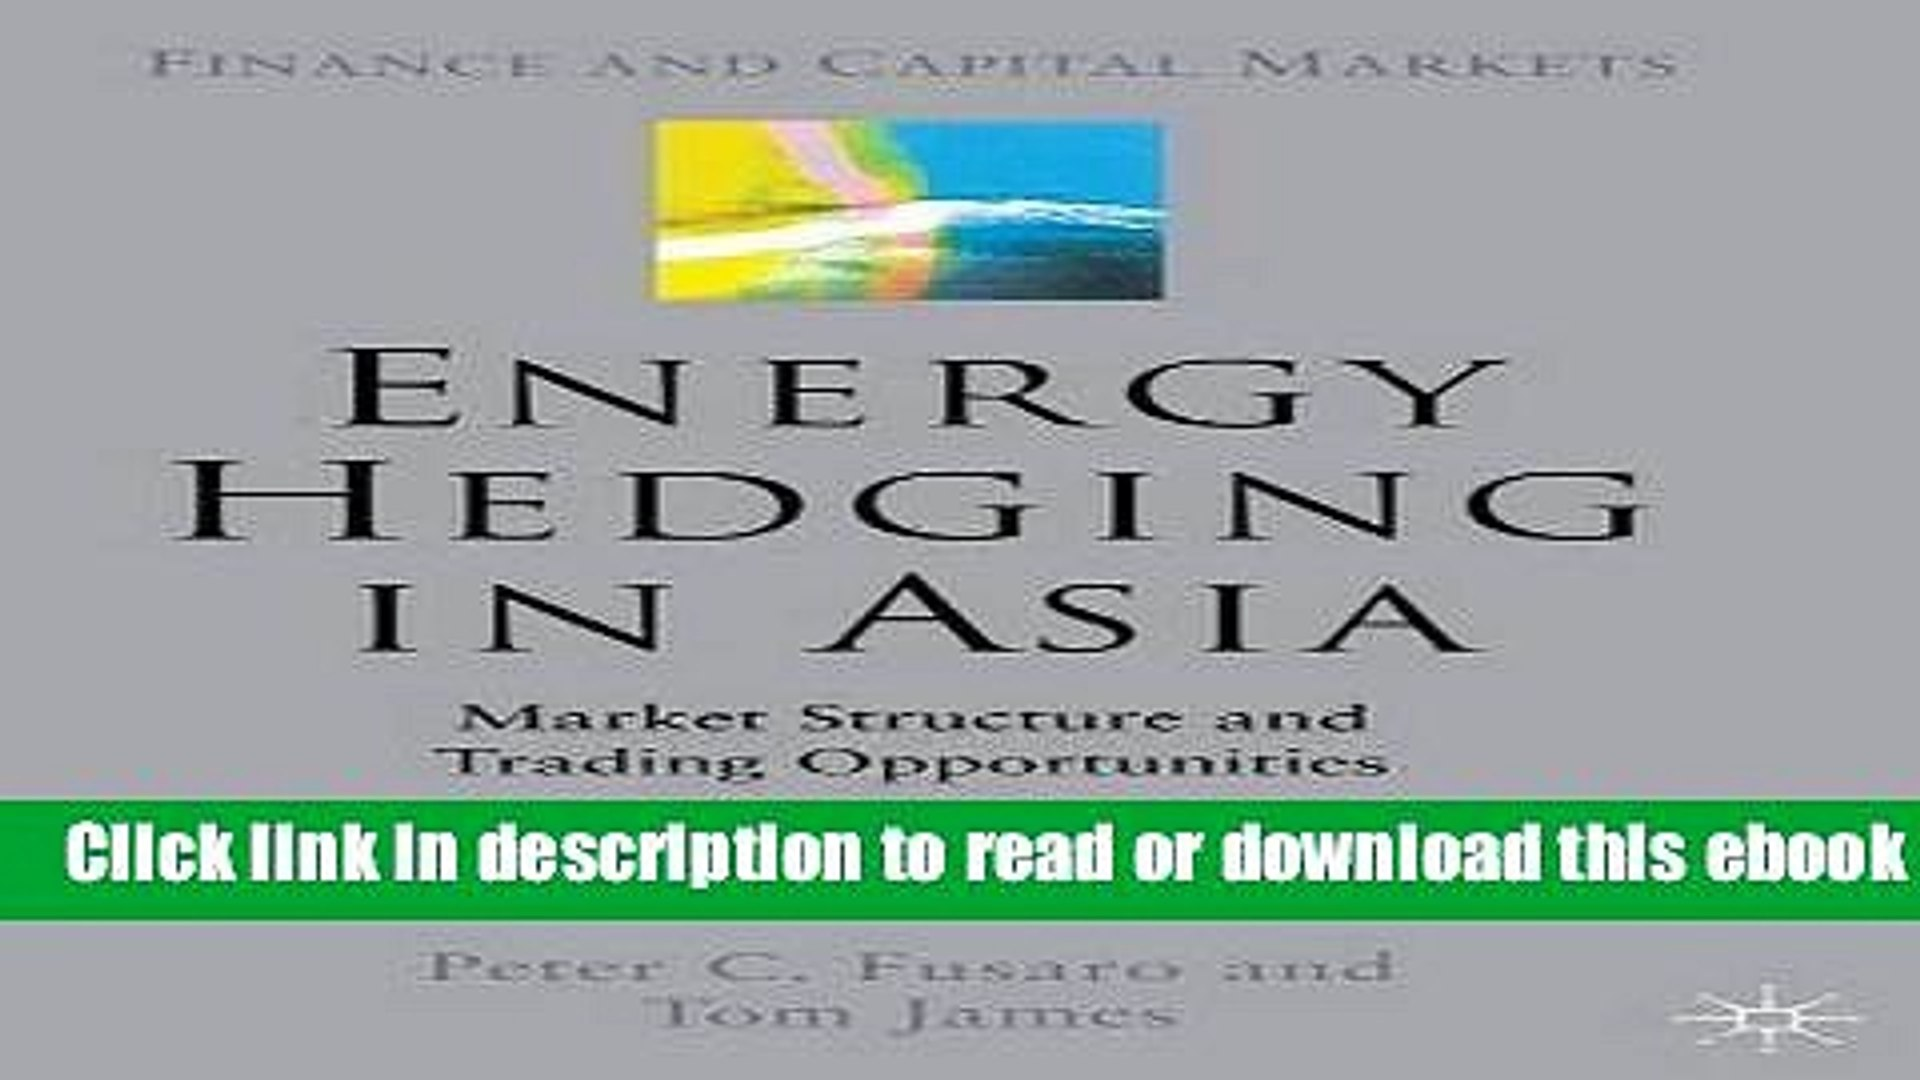 Energy Hedging in Asia: Market Structure and Trading Opportunities (Finance and Capital Markets